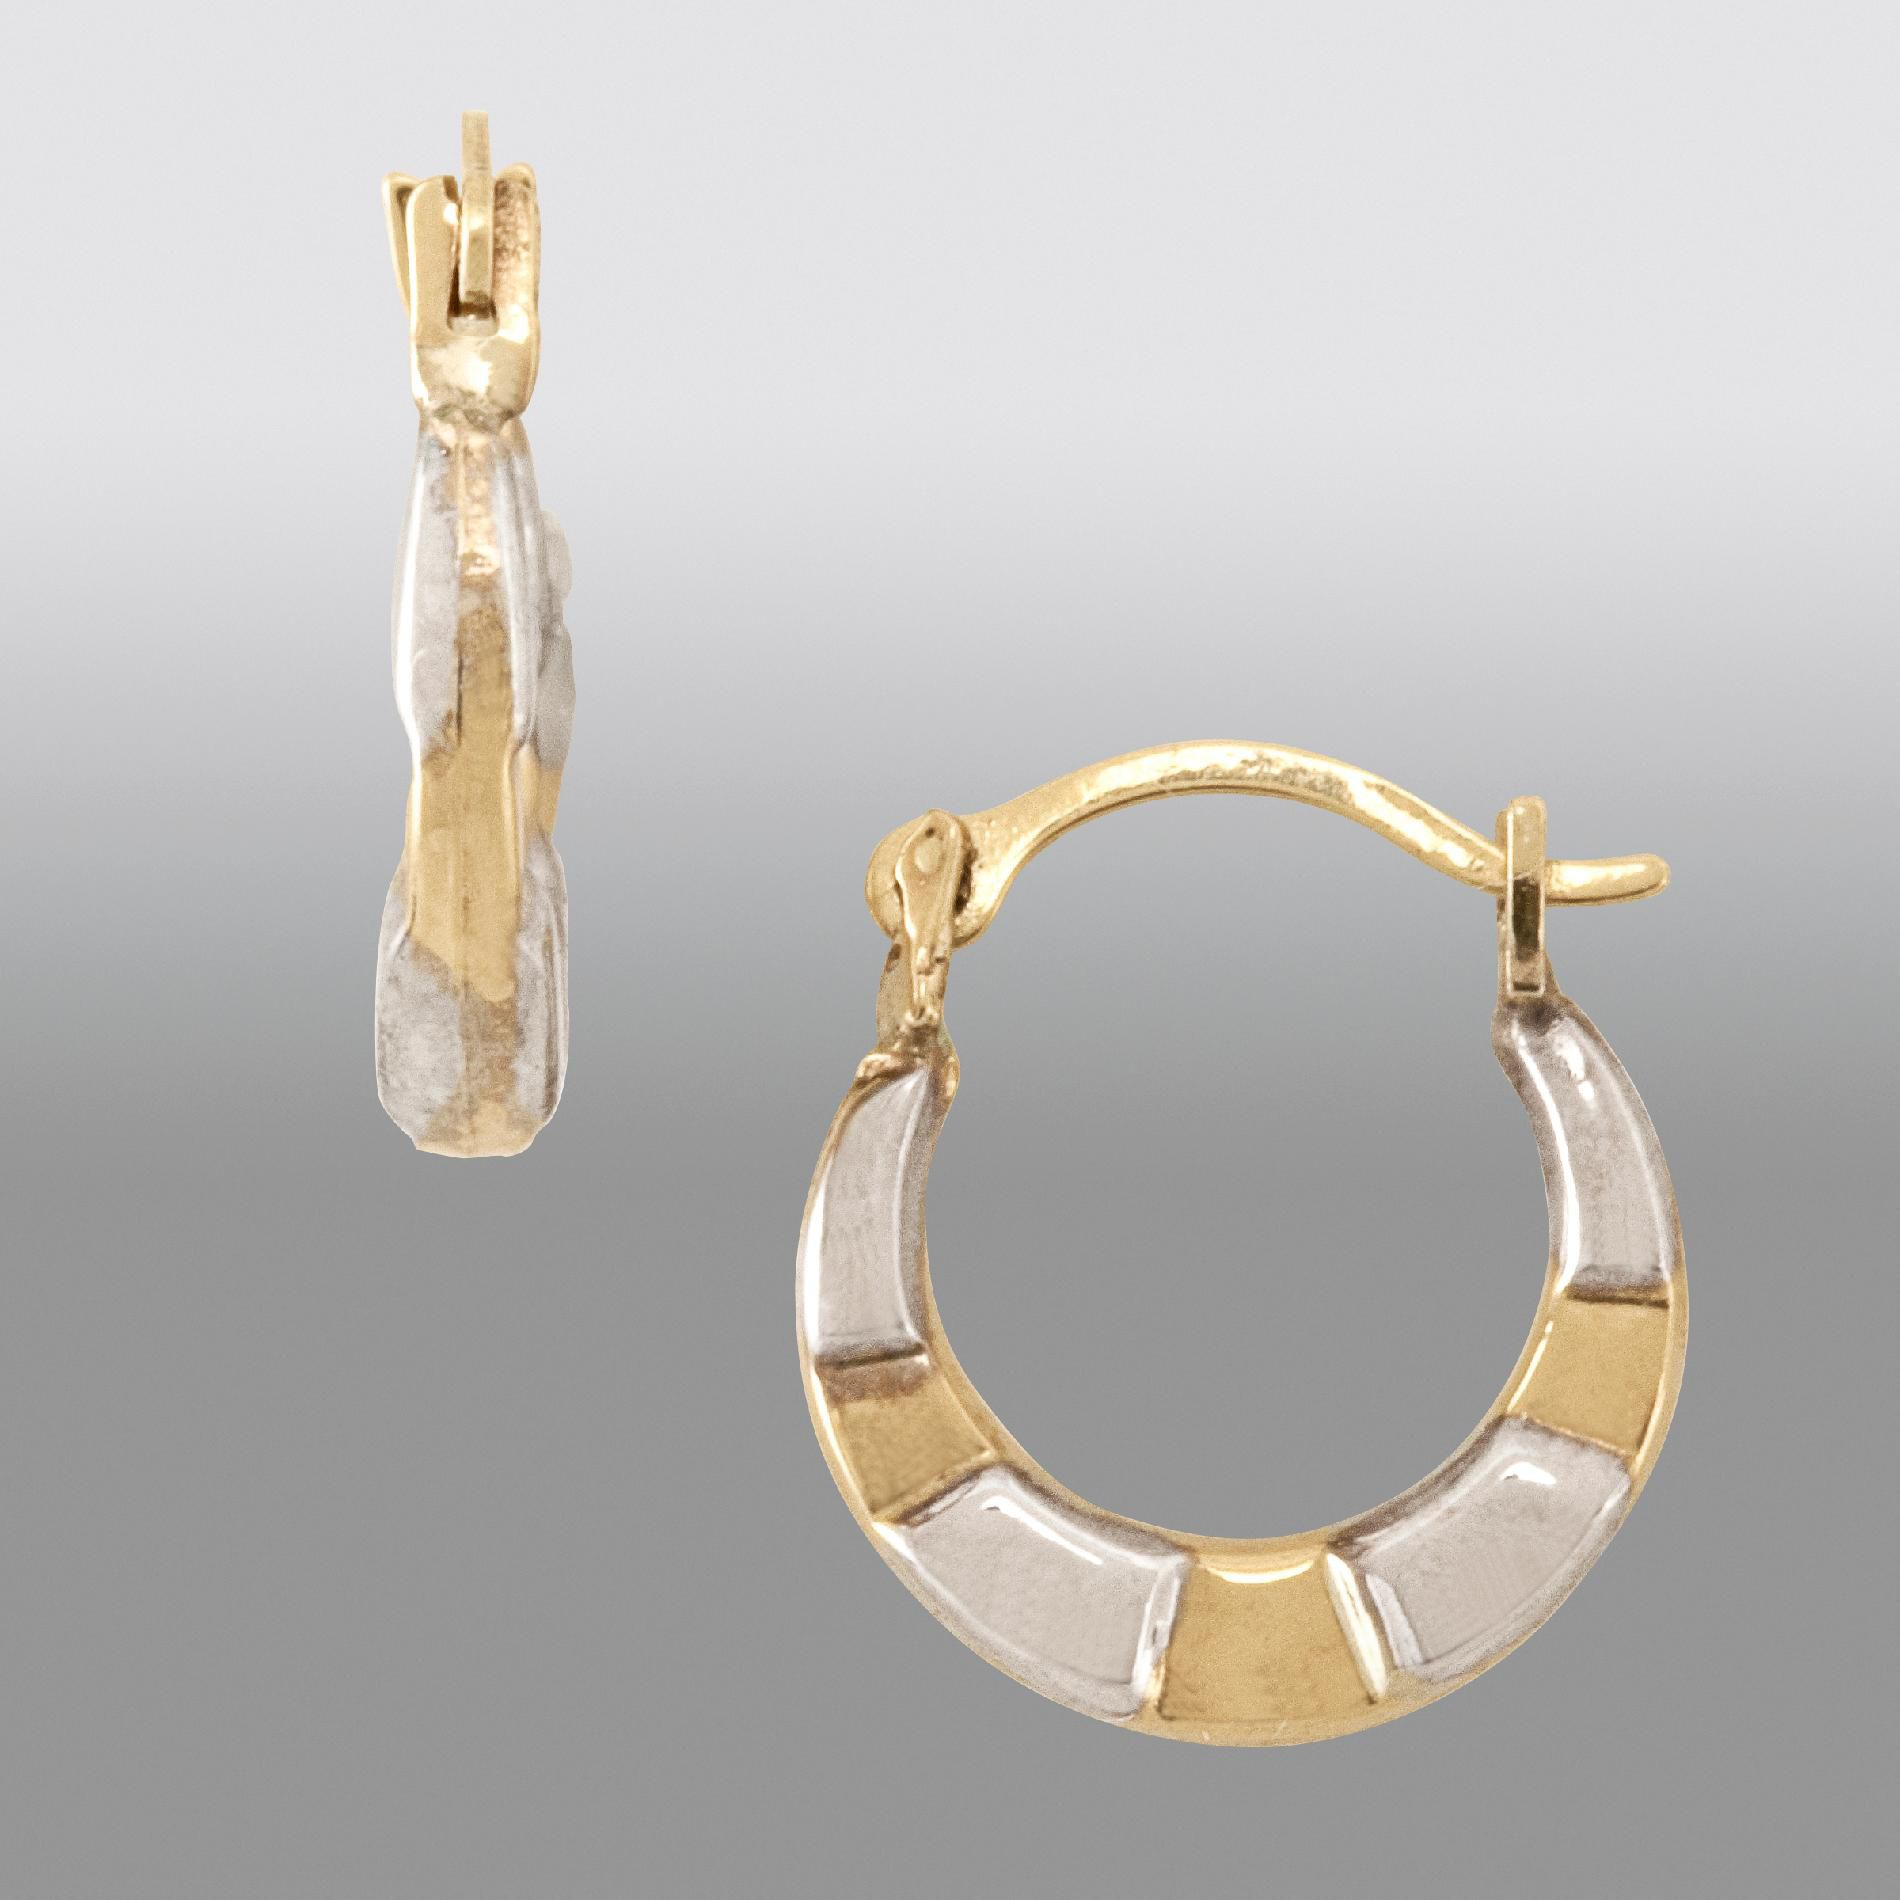 Childs Hoop Earring. 14K White and Yellow Gold